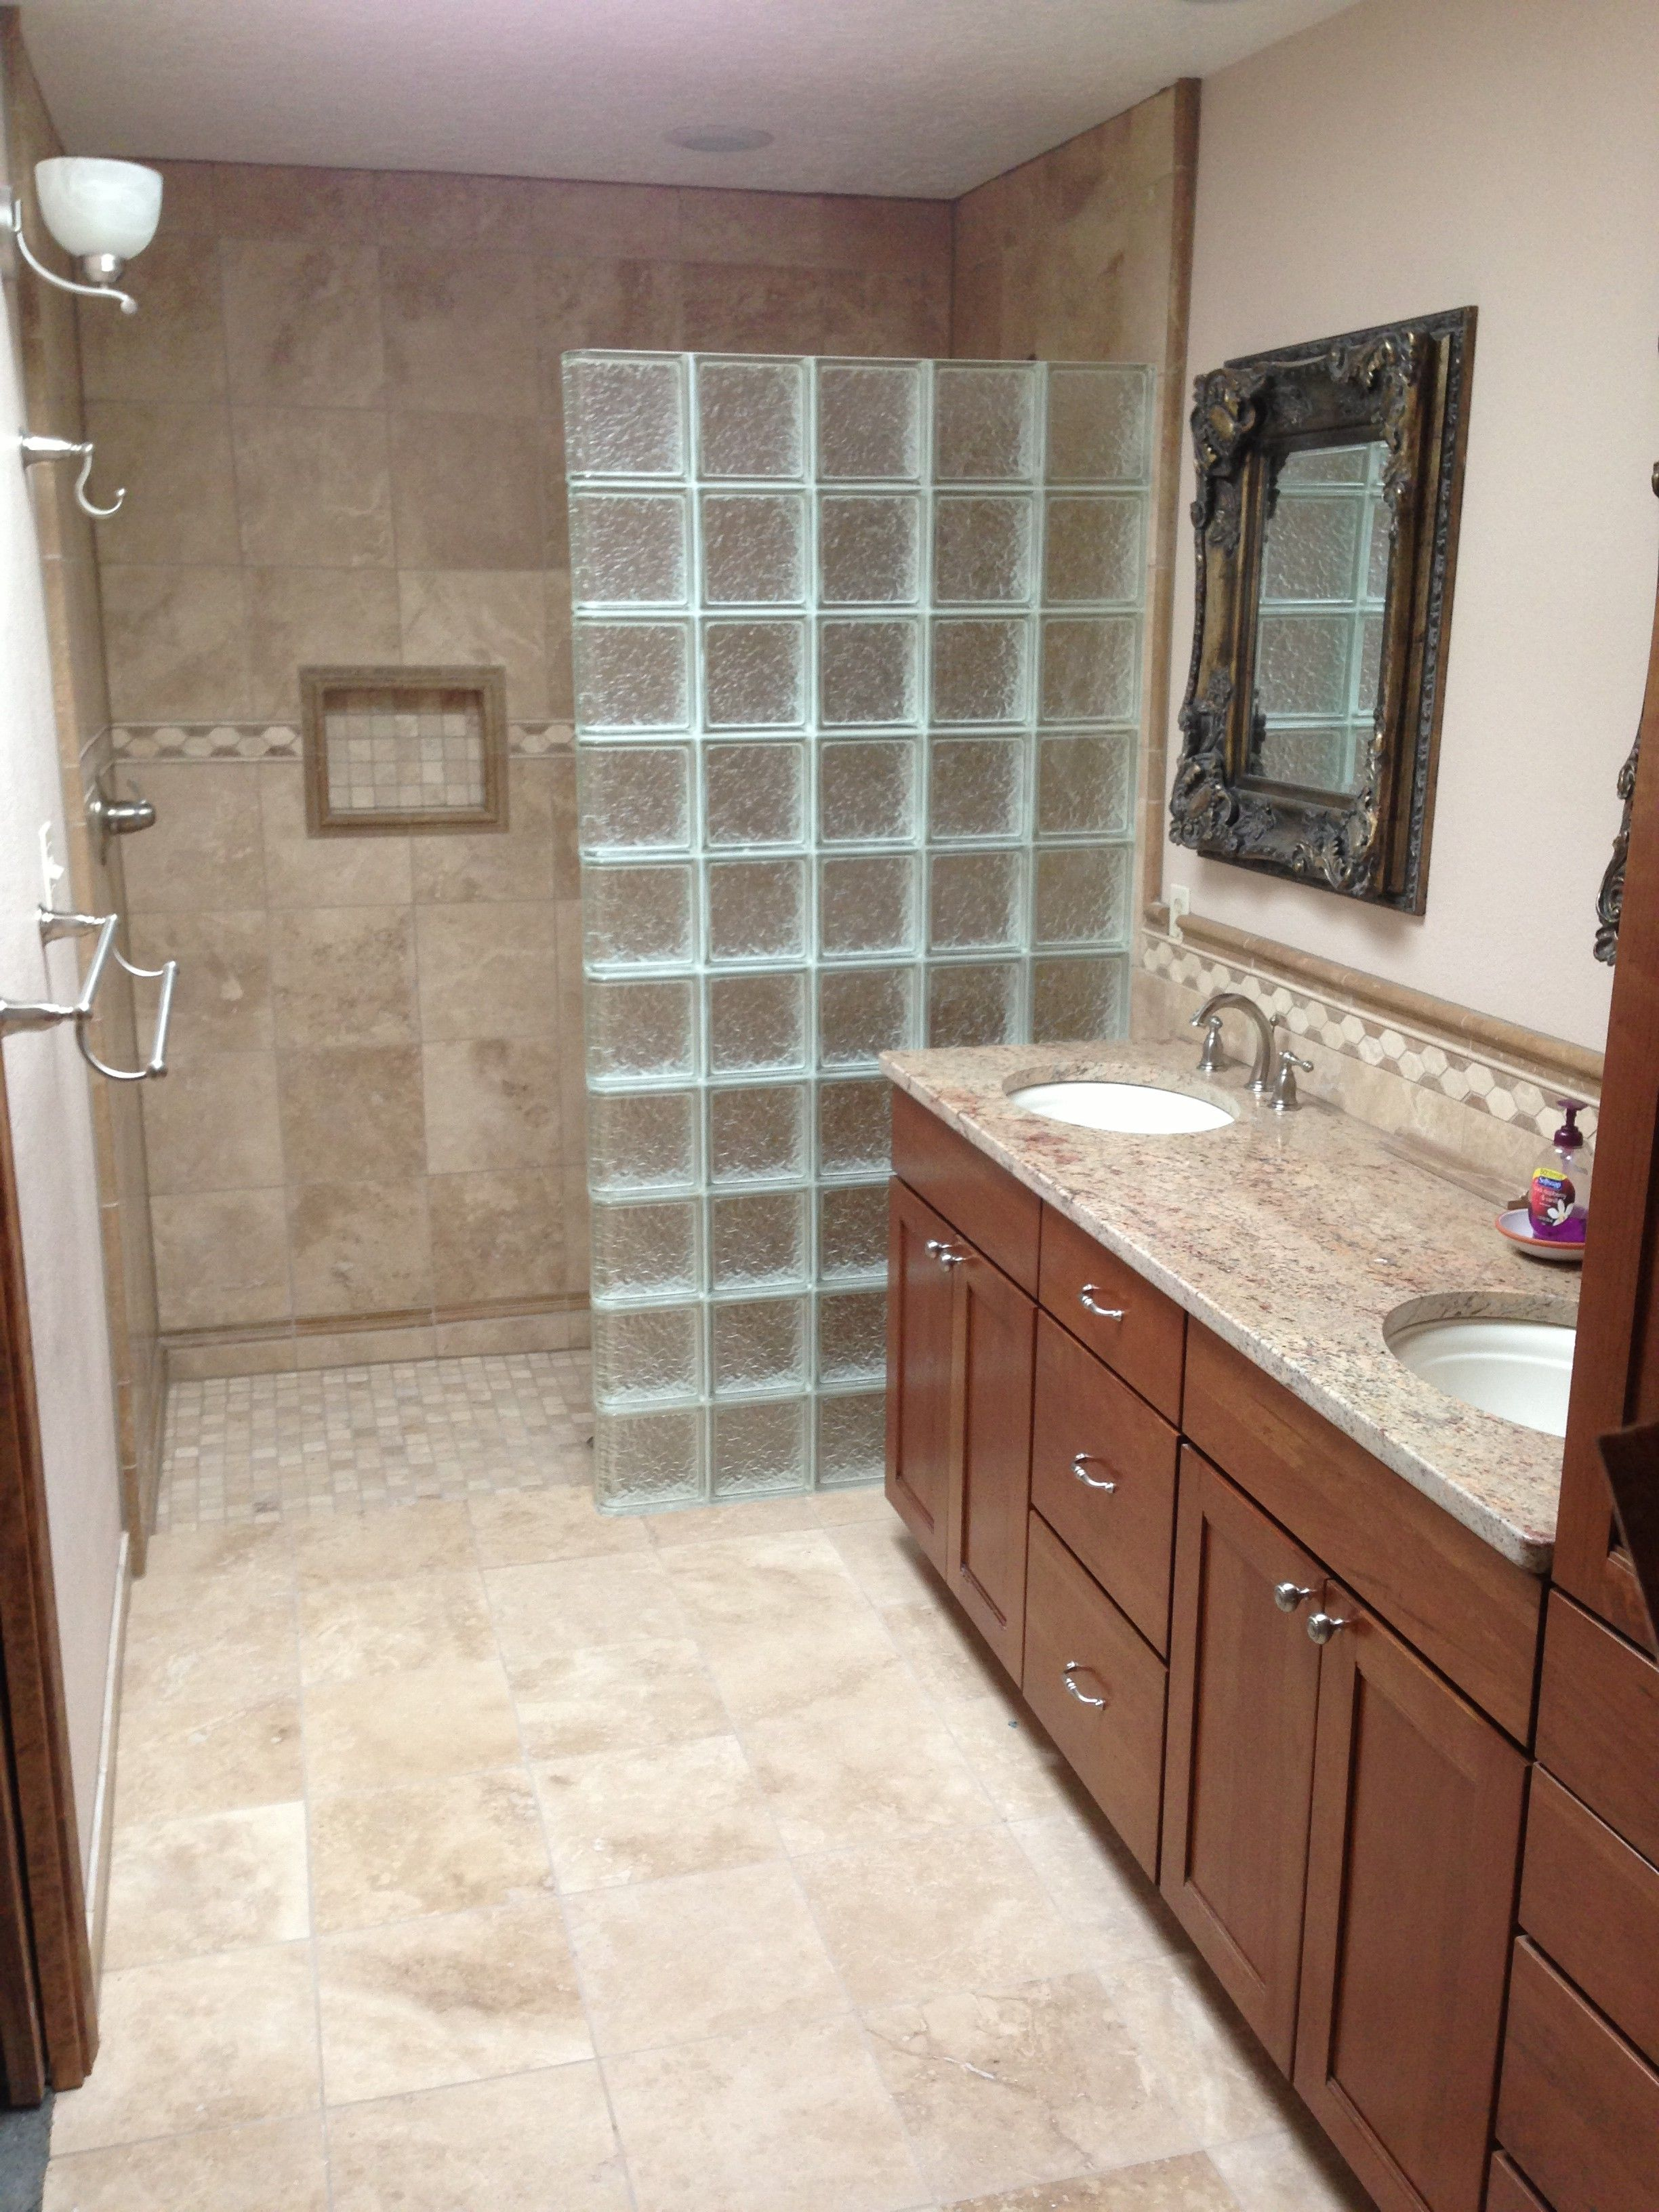 Glass Block Walls In Bathrooms Old Town Glass Blocks With